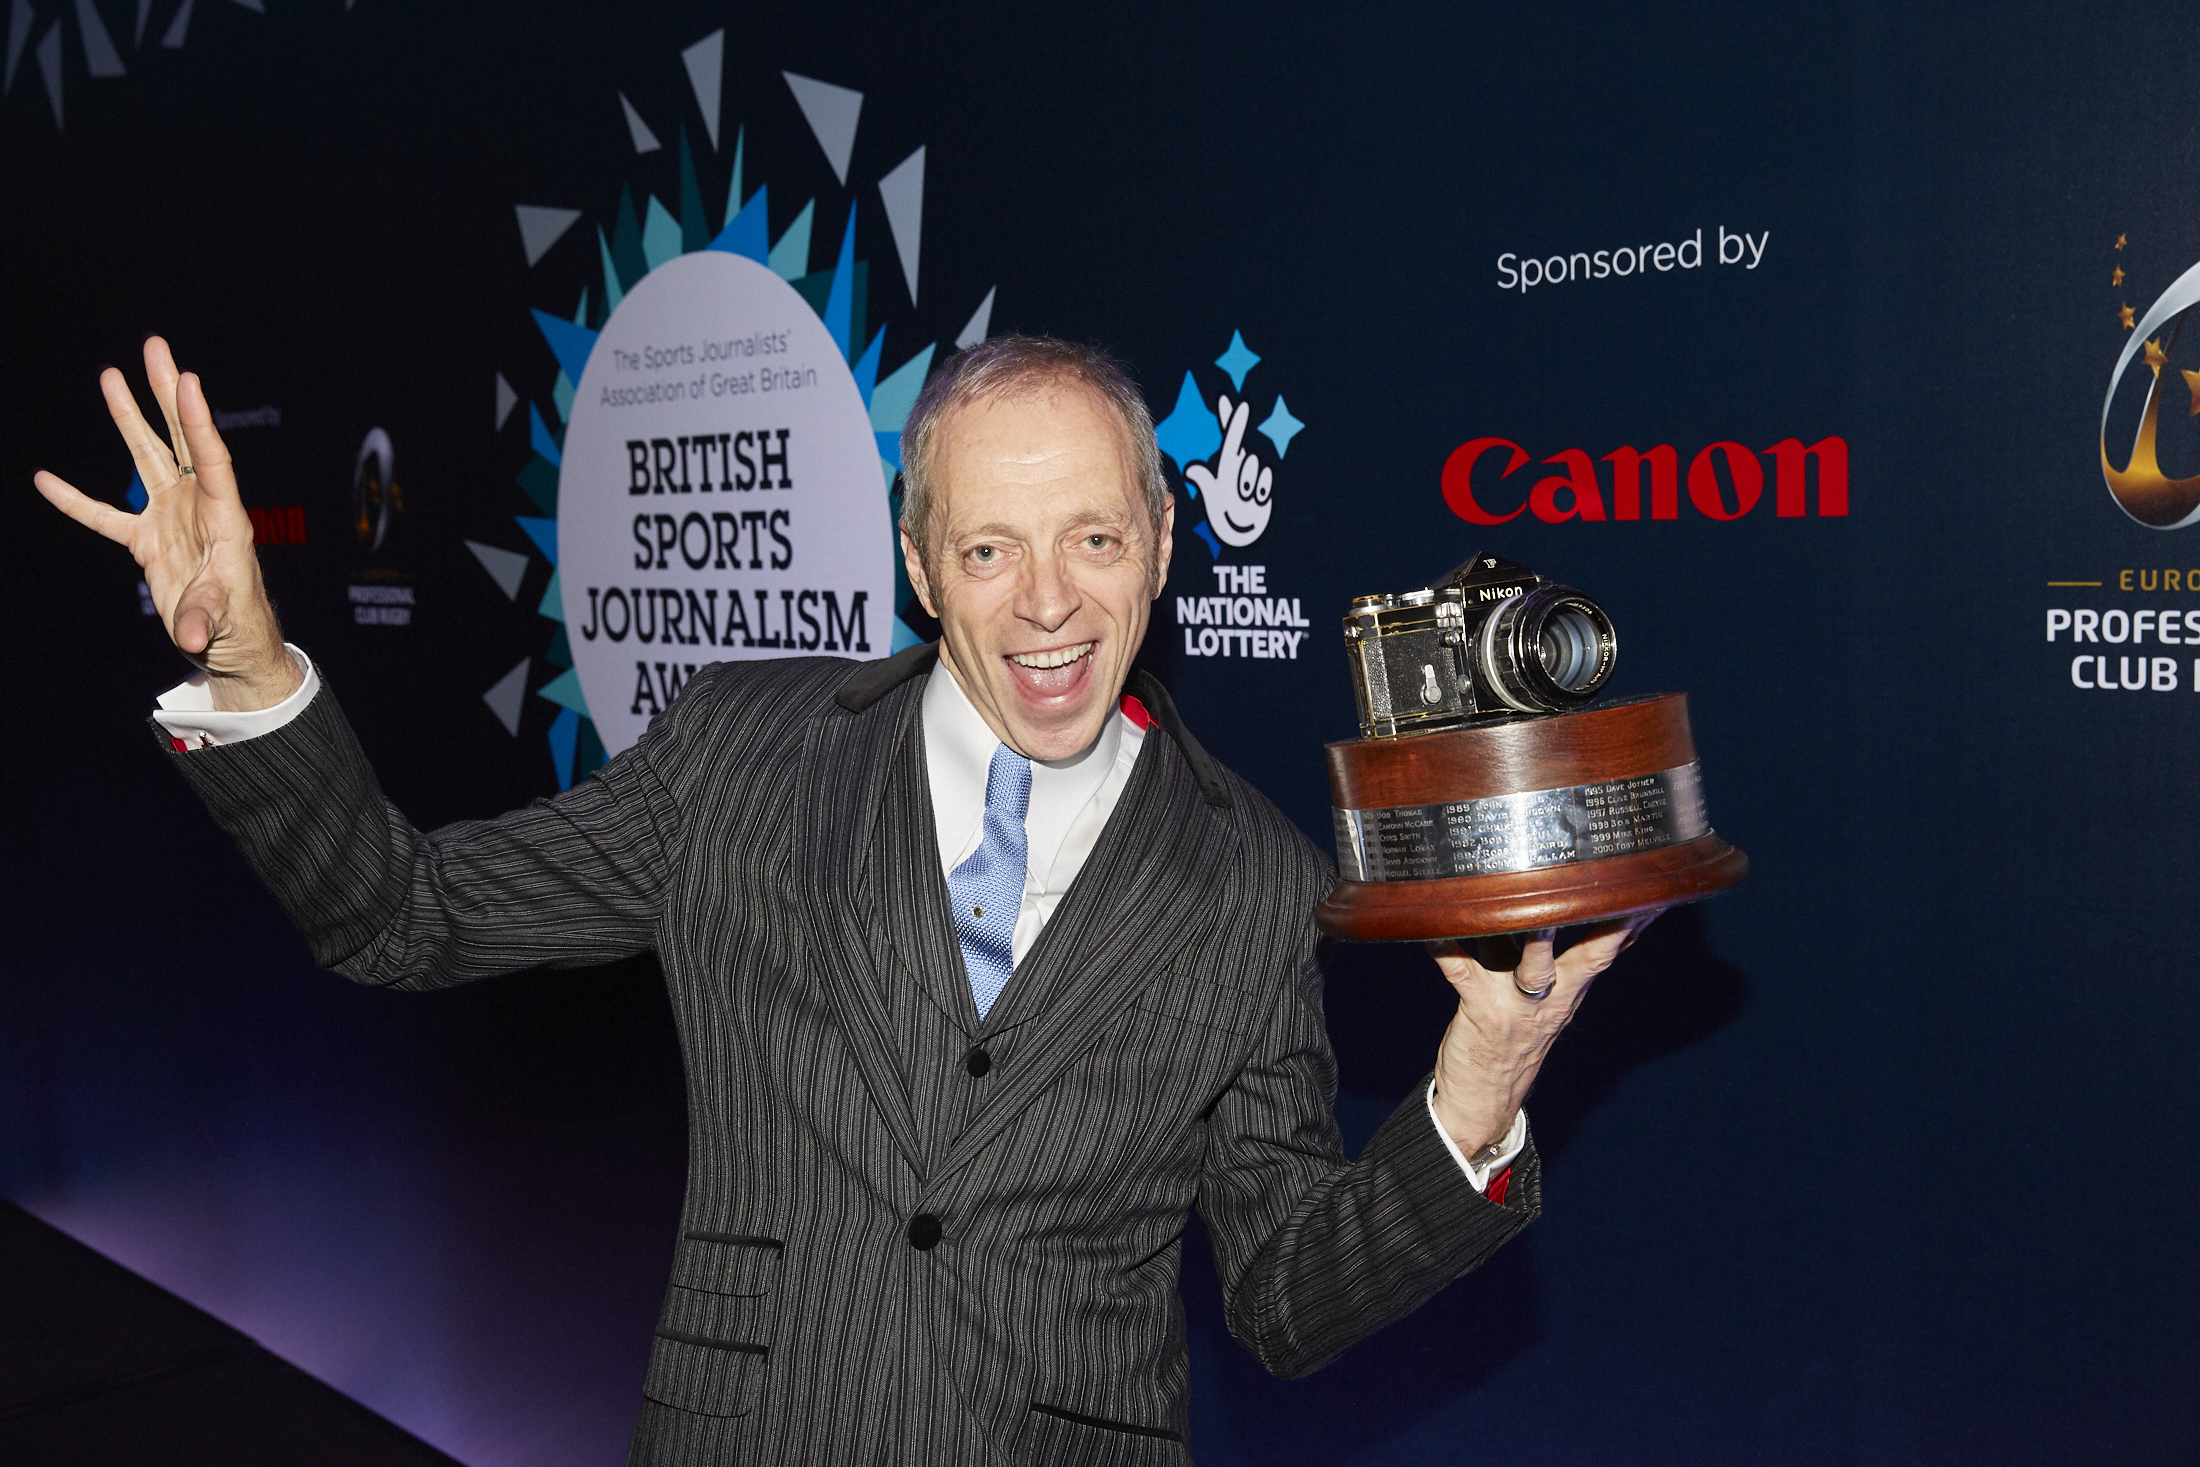 Canon extend sponsorship of British Sports Photographer of the Year Awards to 2021